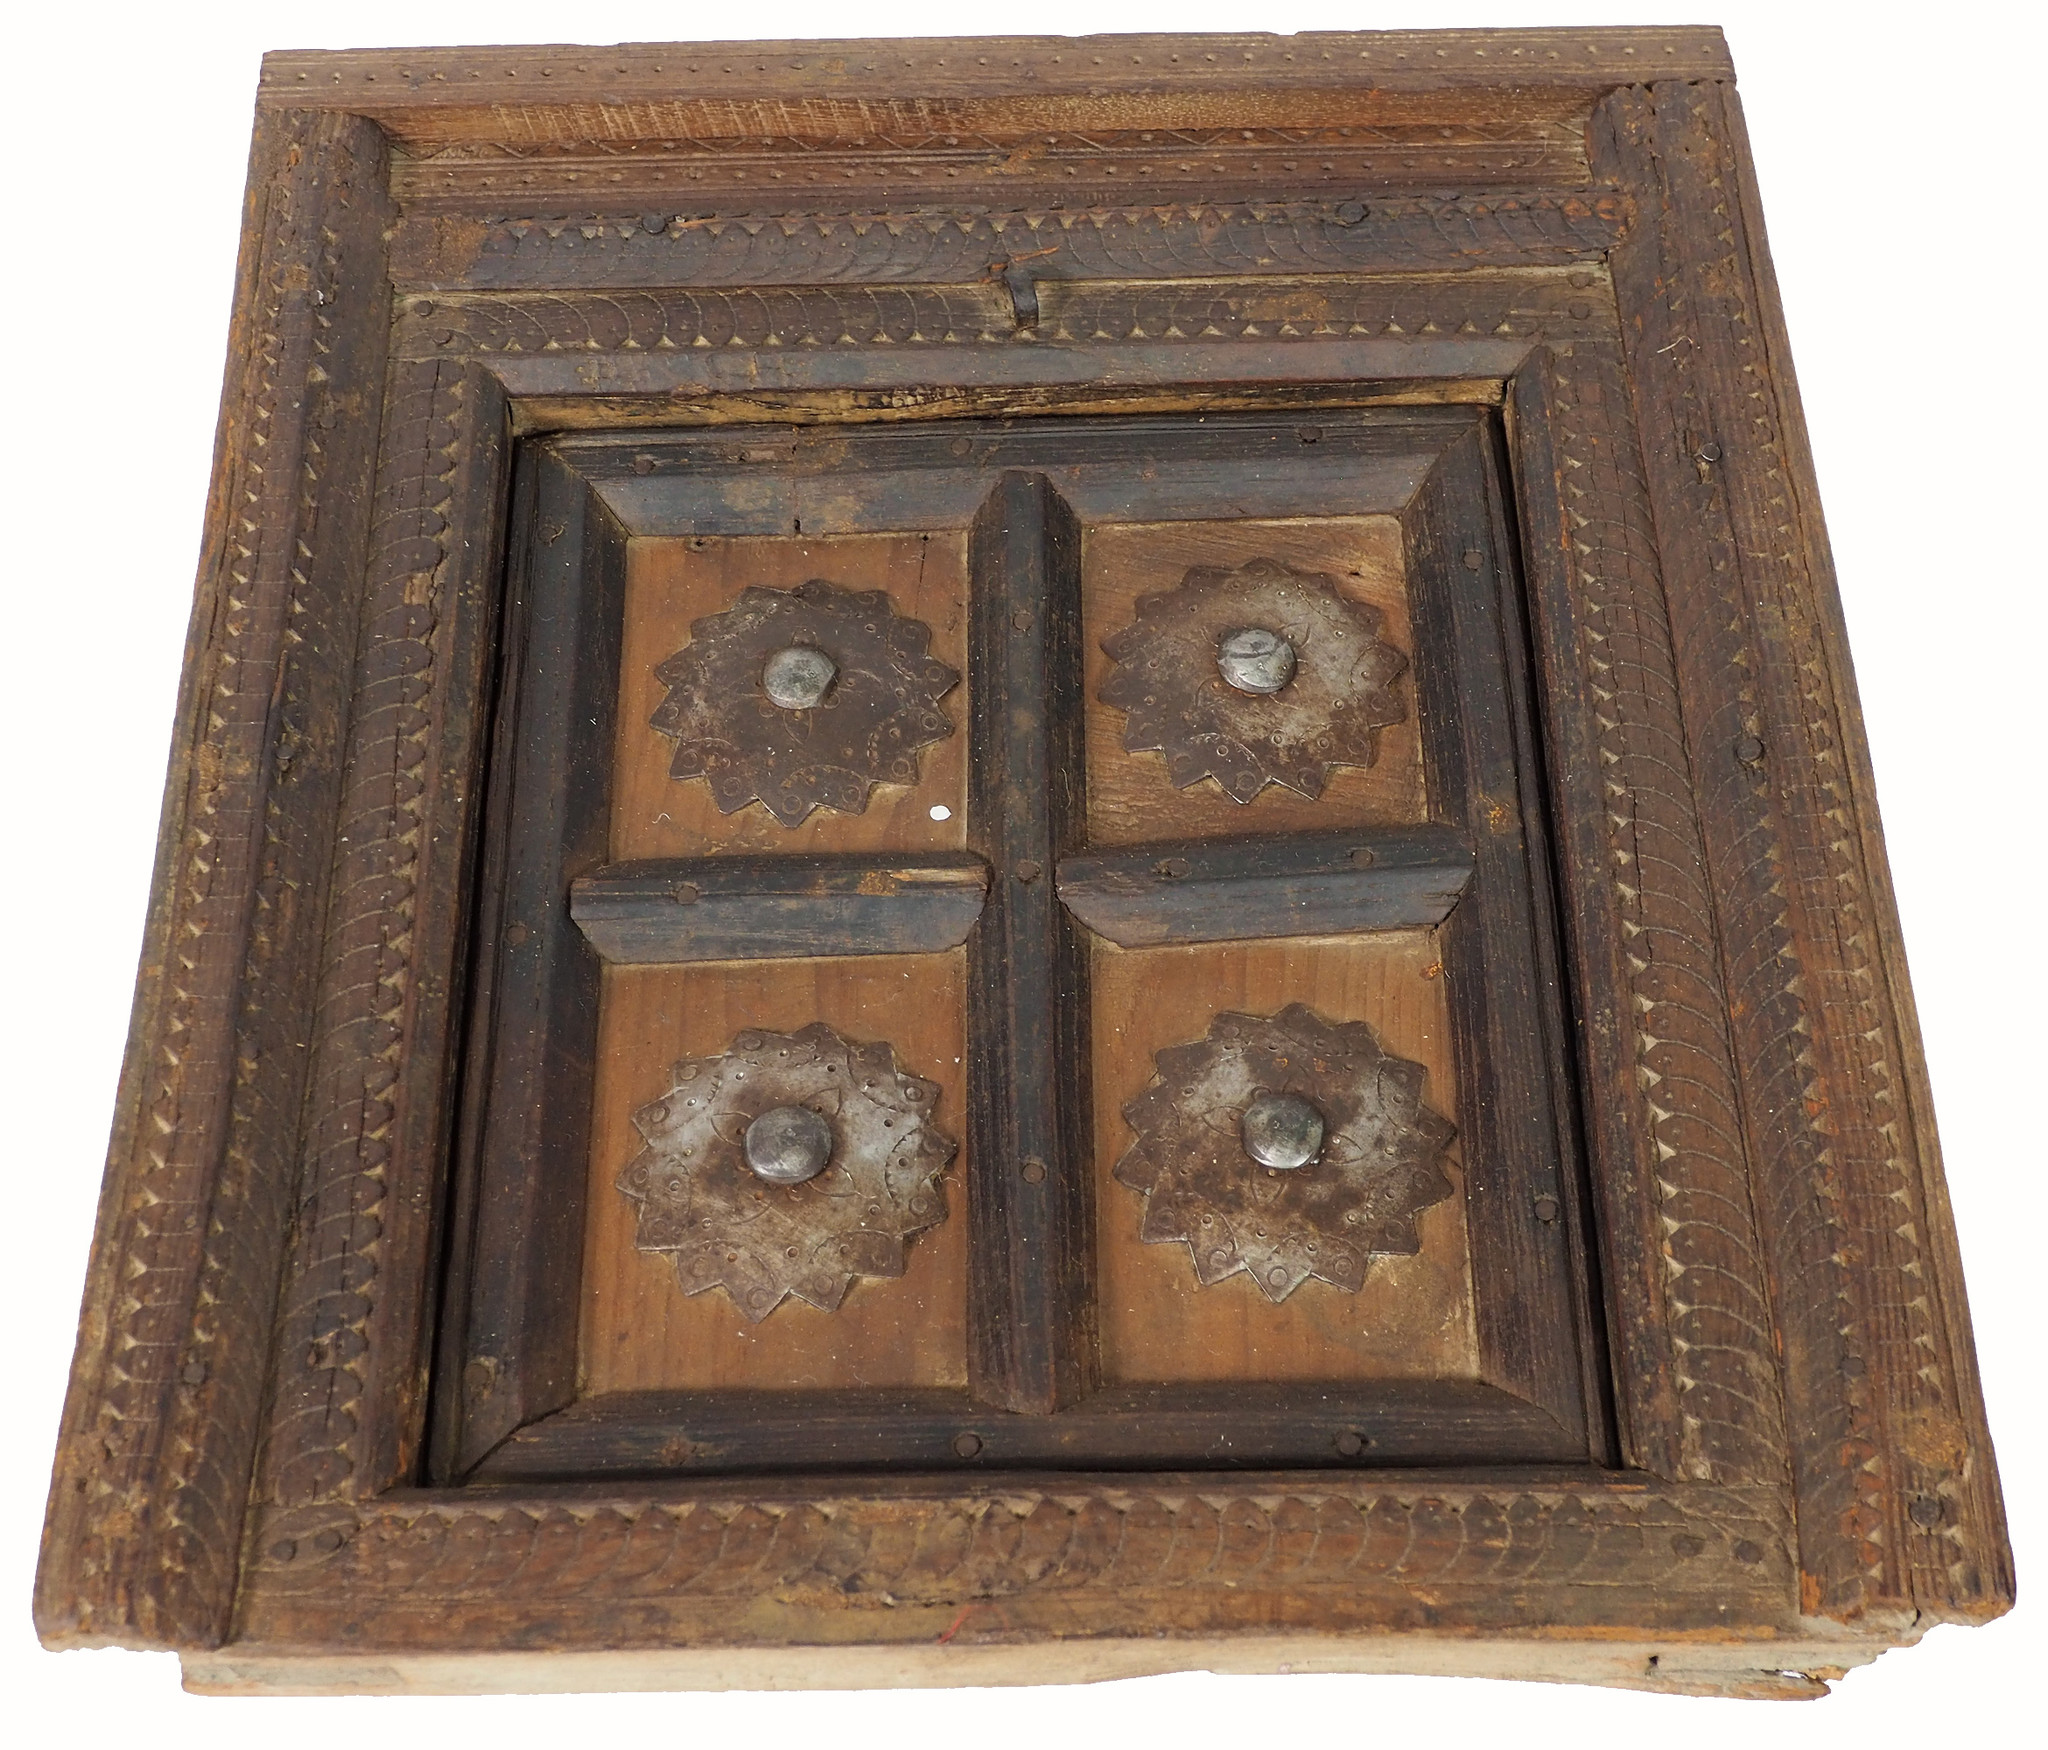 orient vintage carved wooden window from Nuristan Afghanistan   -No:6